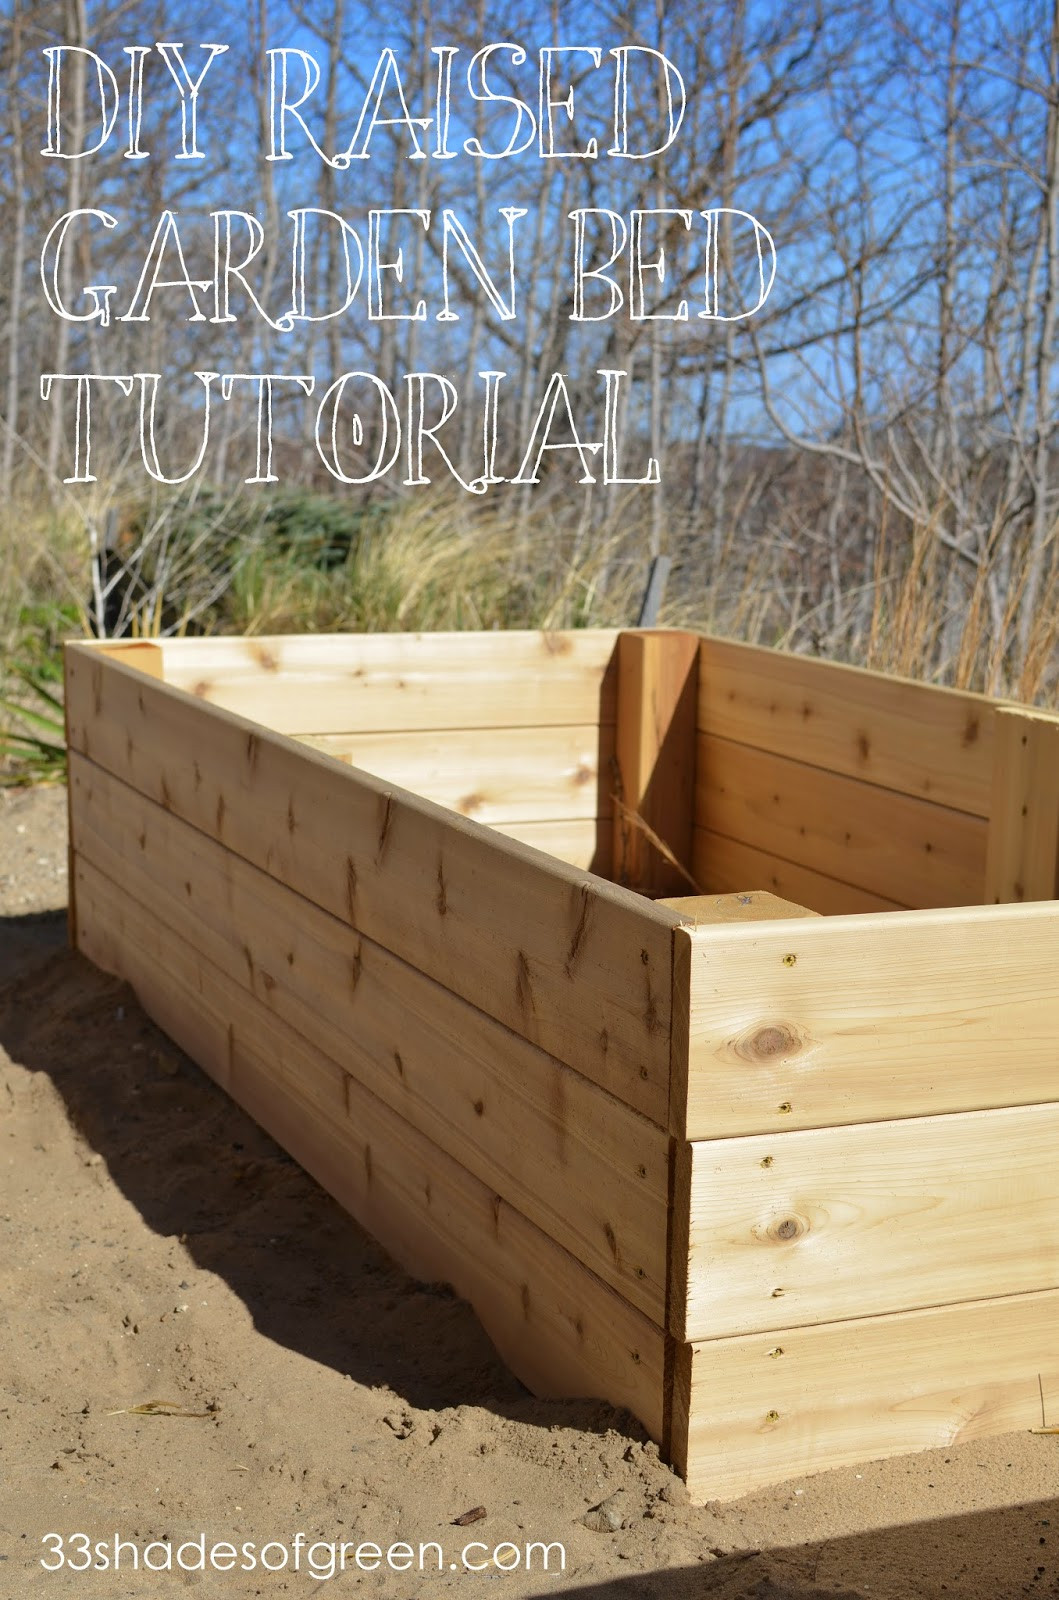 Best ideas about Easy DIY Raised Garden Bed . Save or Pin Easy DIY Raised Garden Bed Tutorial Now.